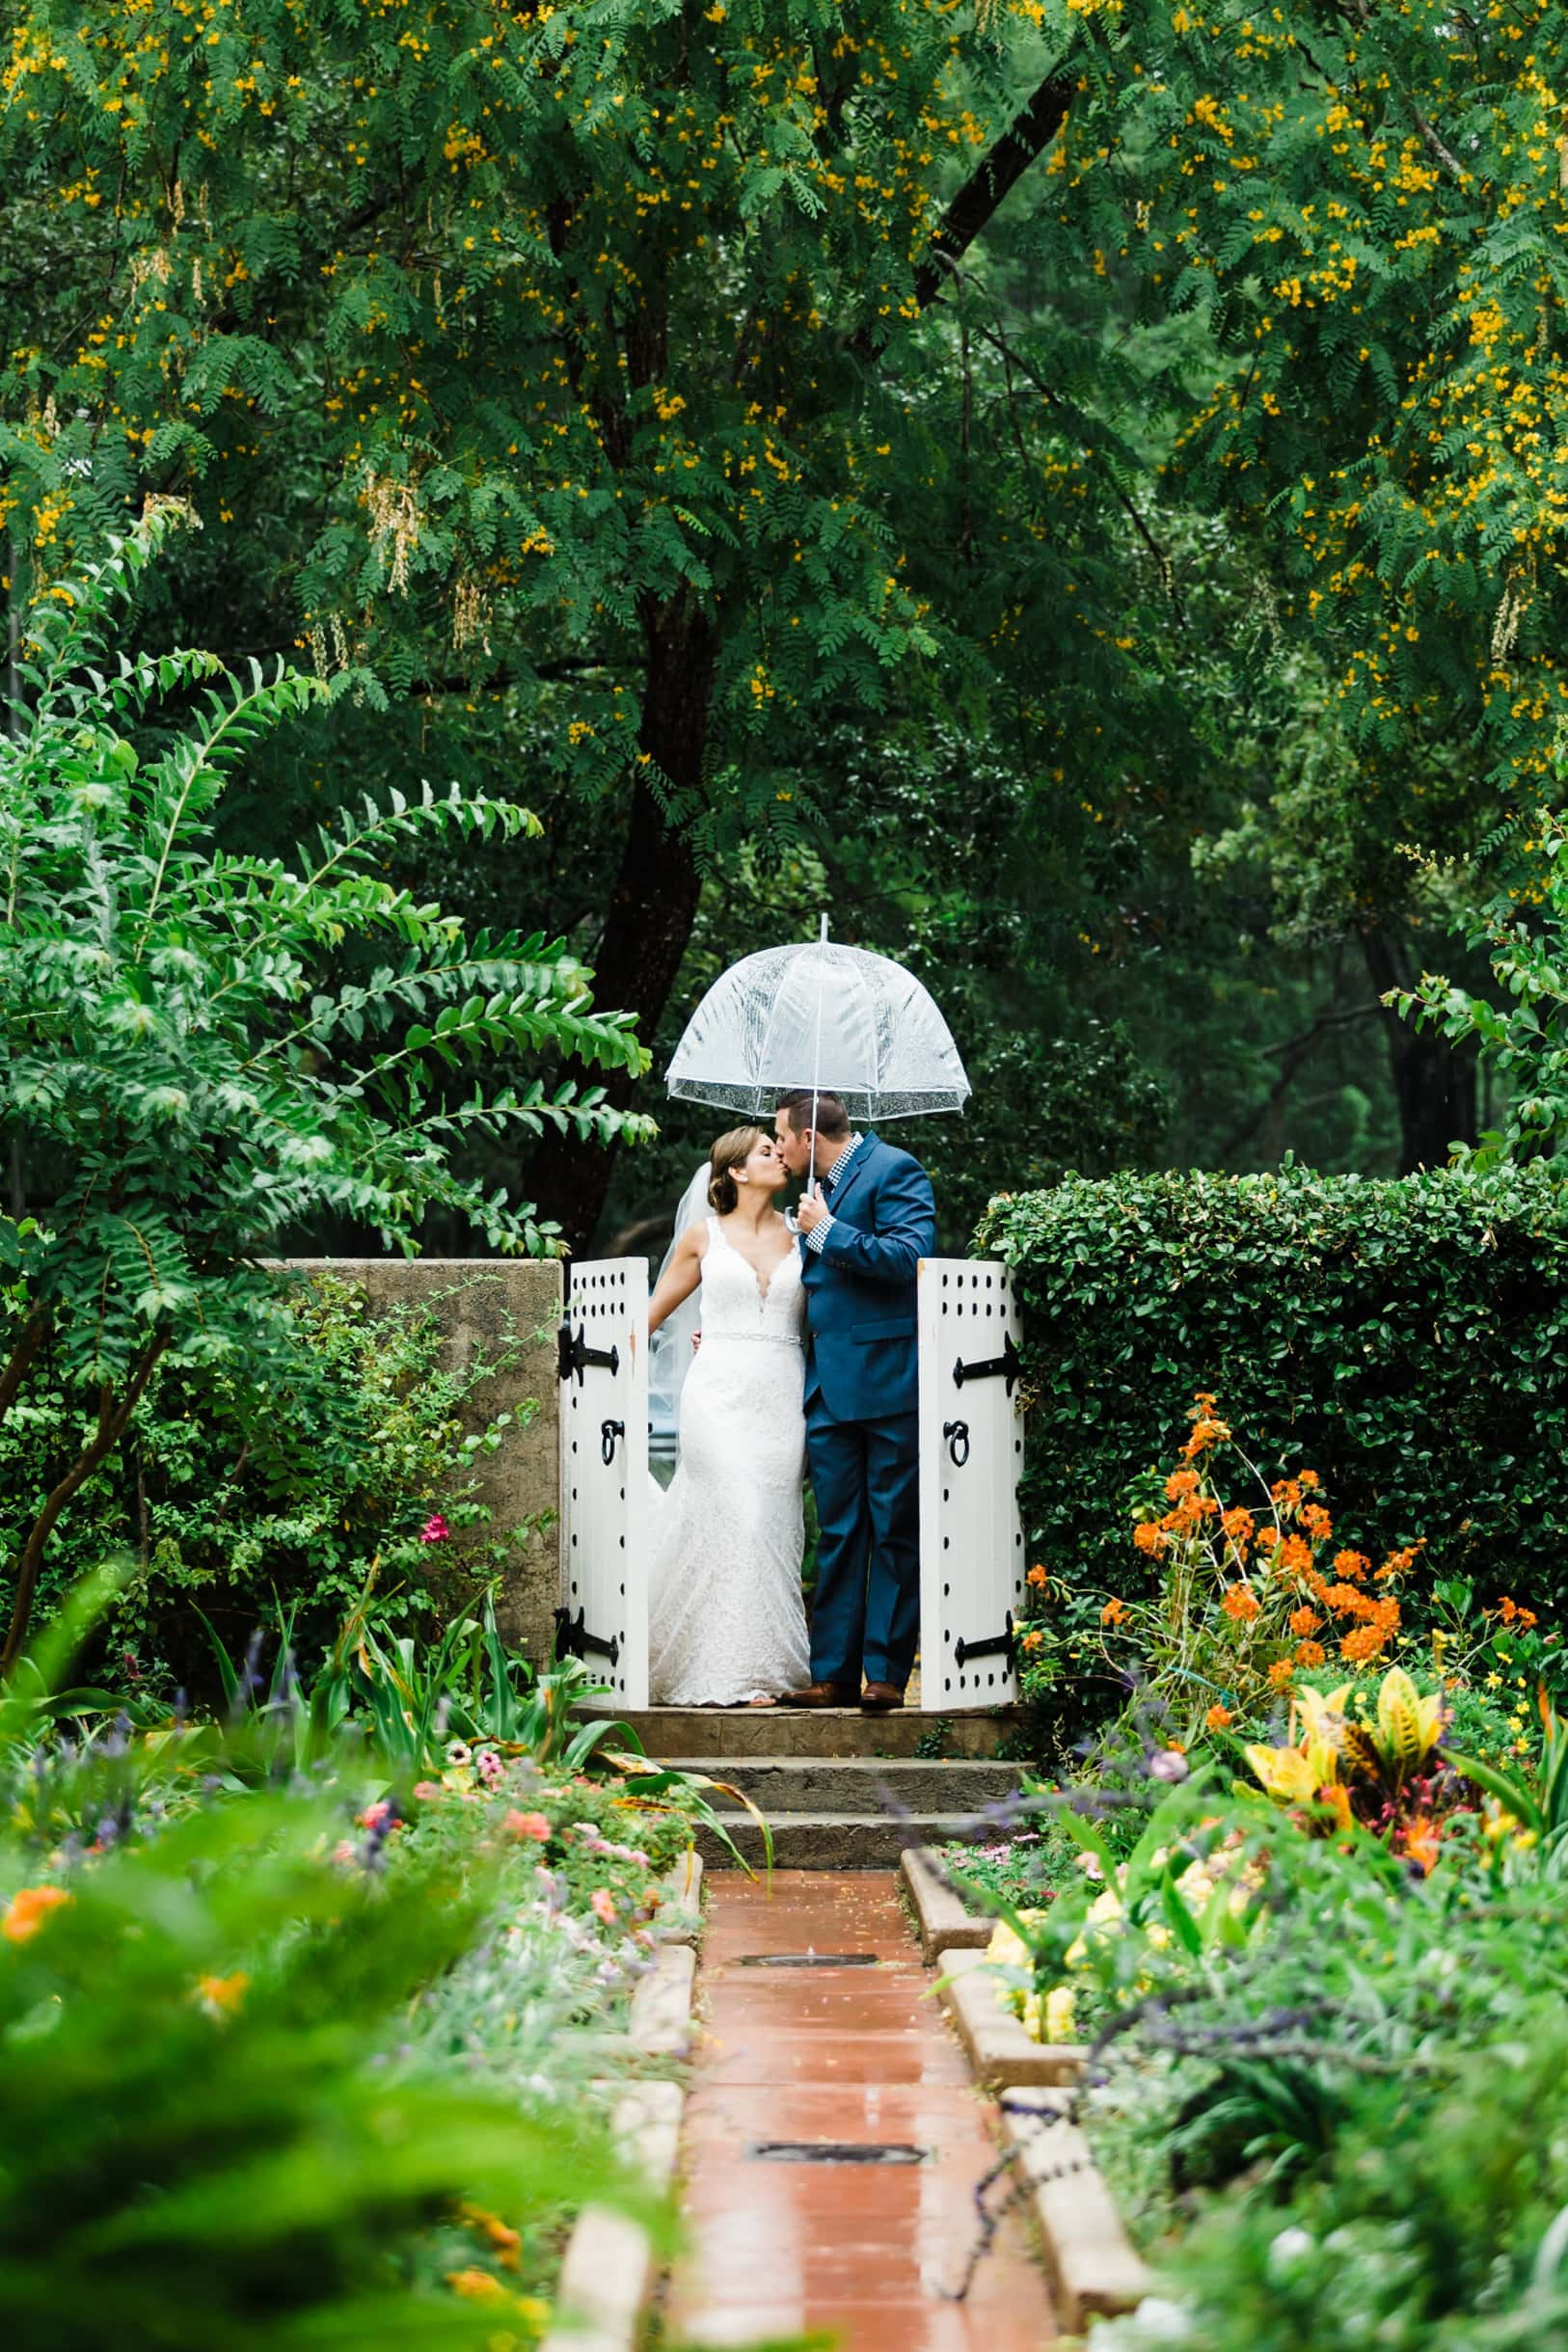 bride and groom kissing under clear bubble umbrella under the rain with lush green gardens surrounding them at sydonie mansion